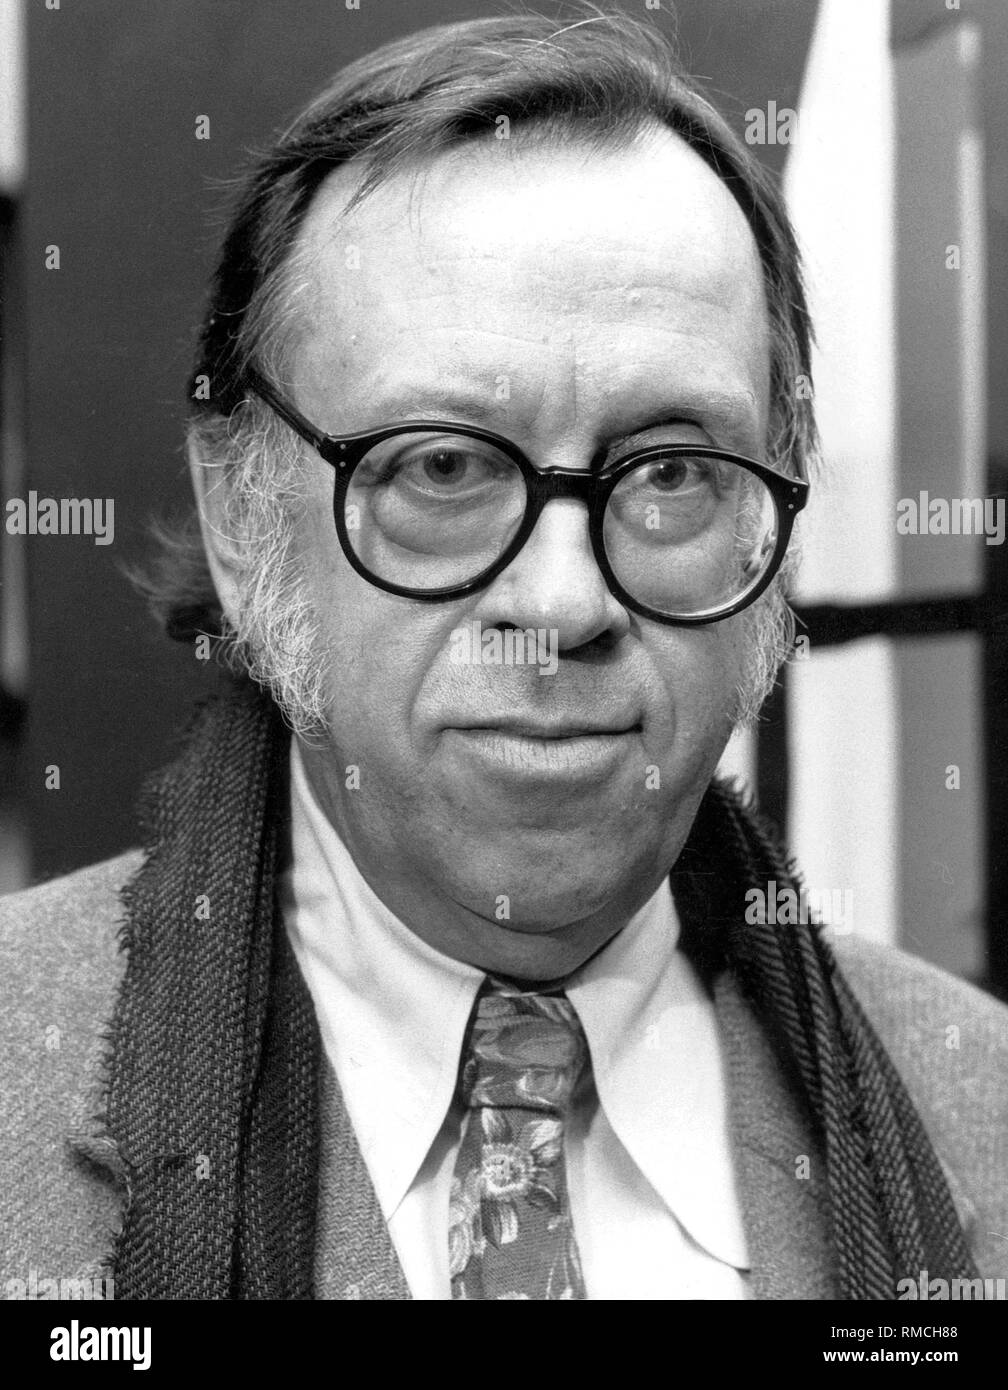 Enno Patalas, director of the Munich Film Museum. - Stock Image